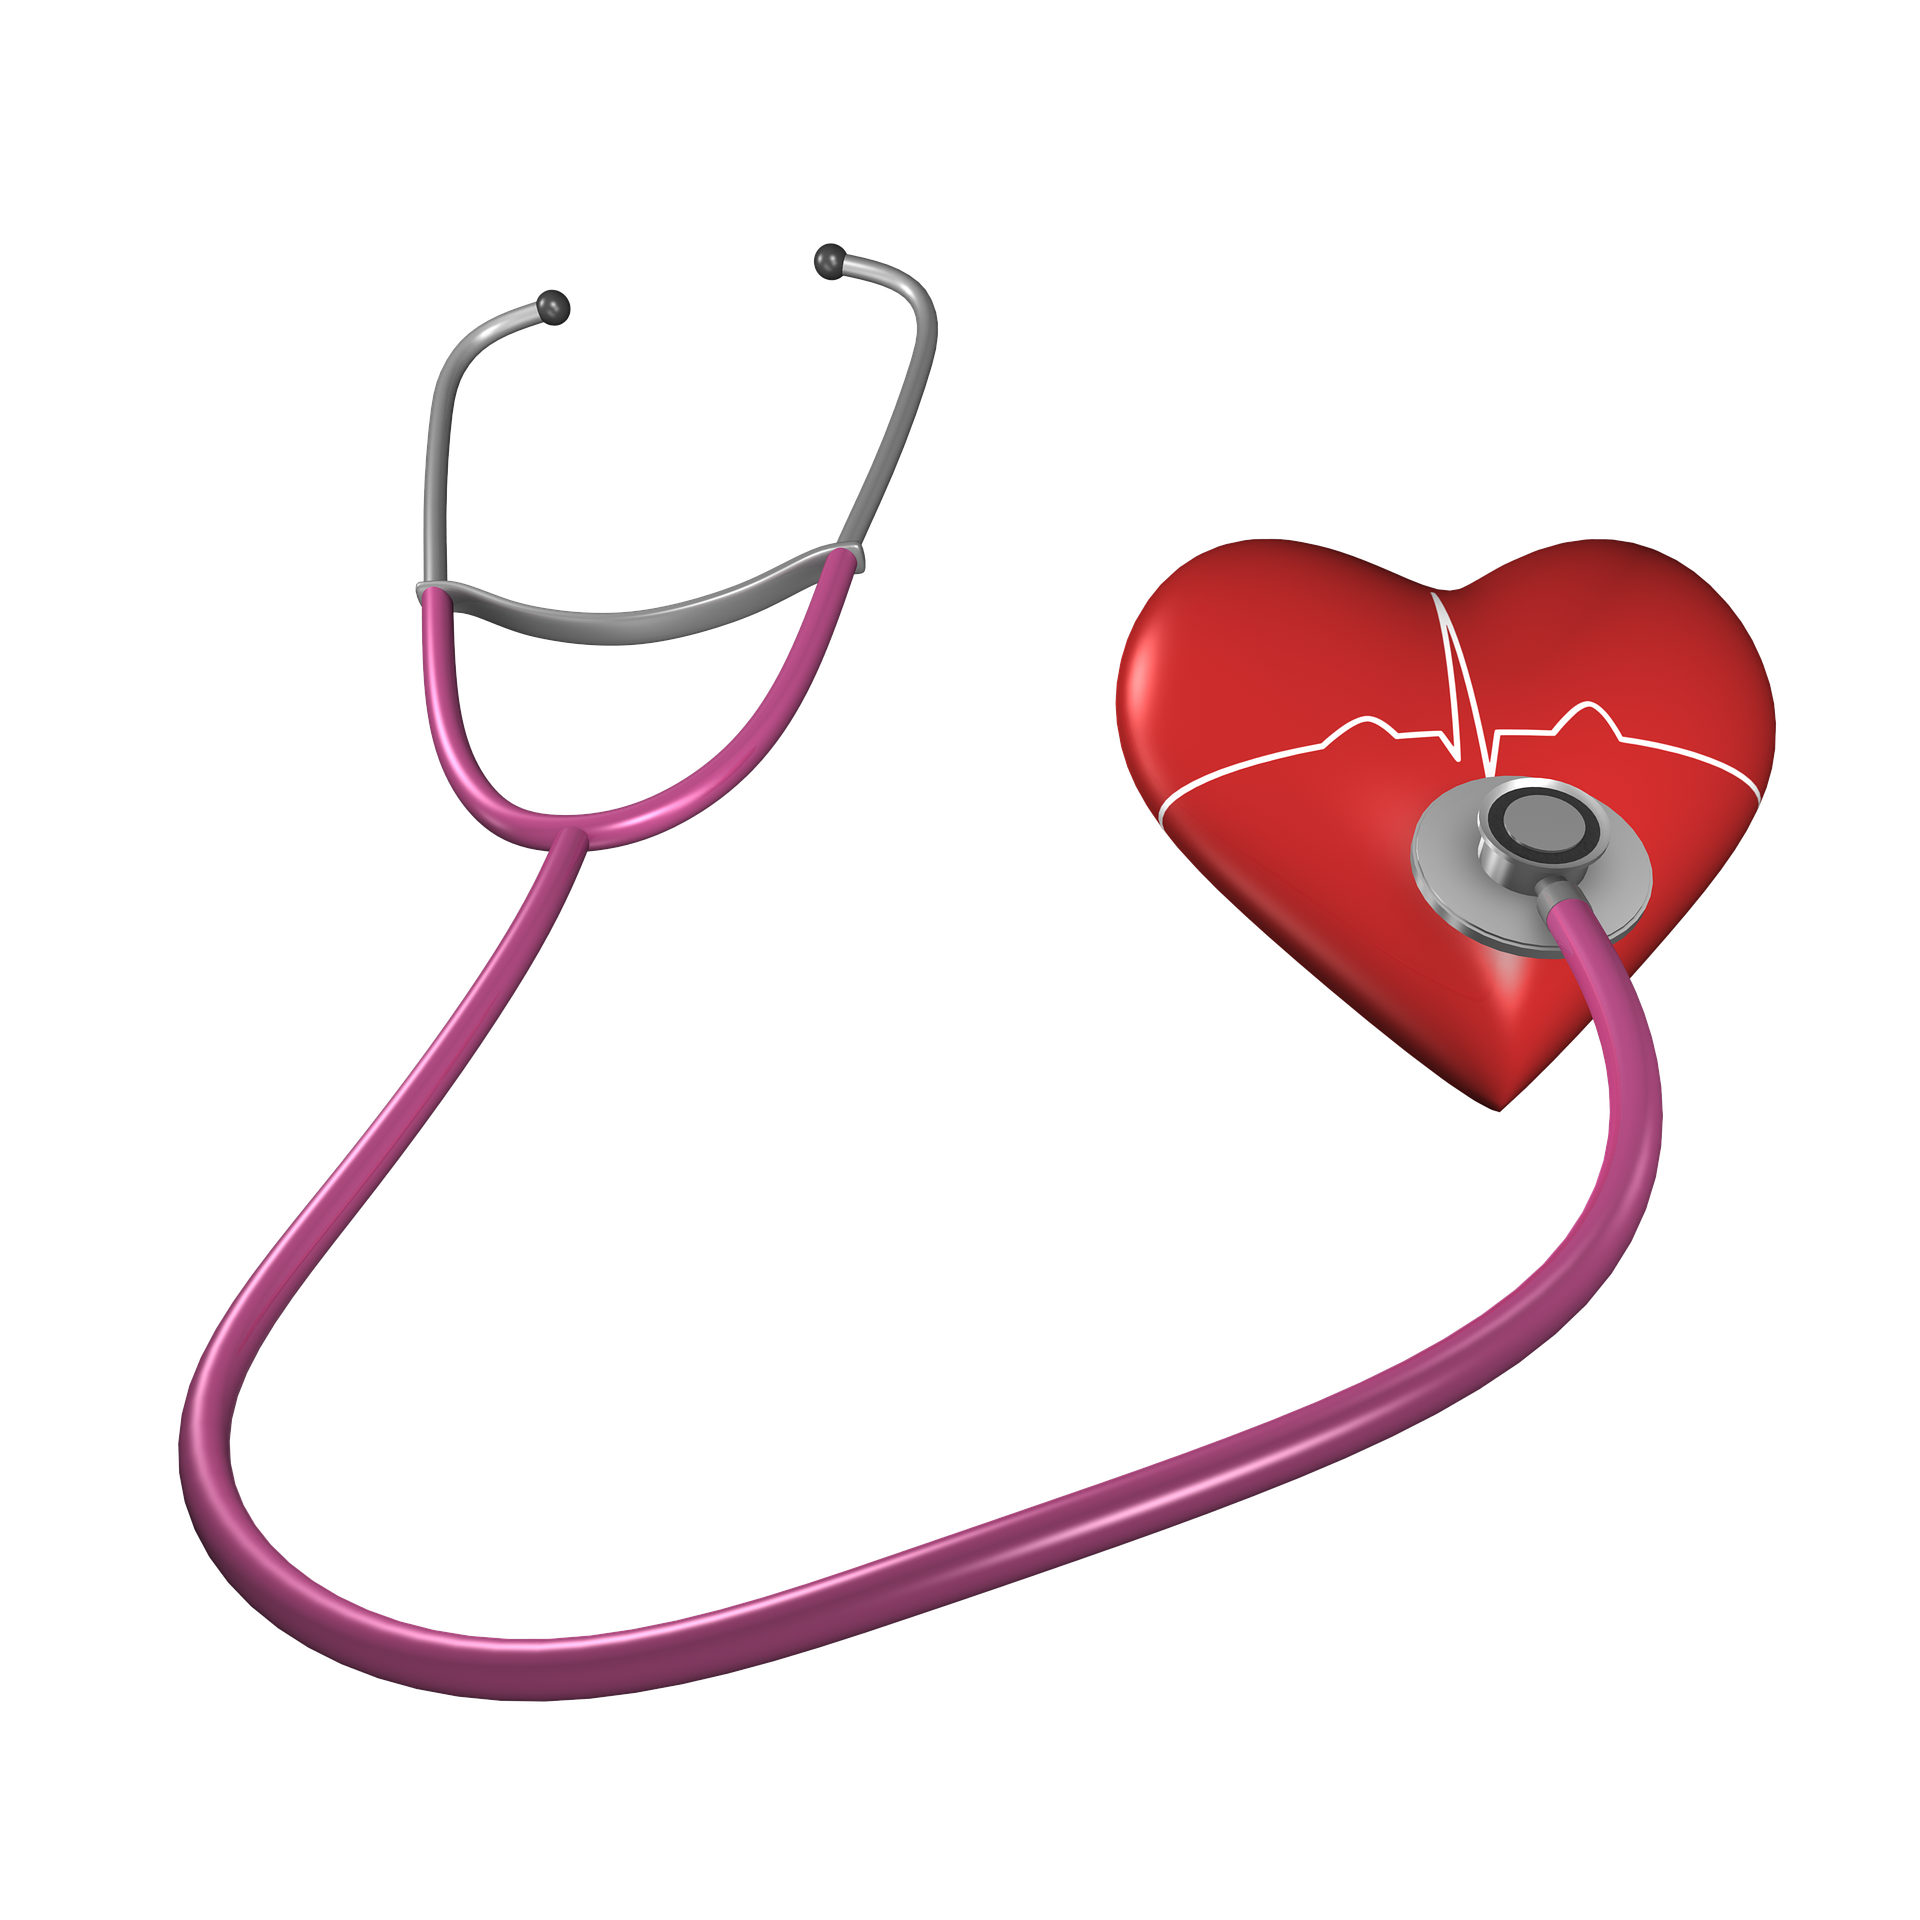 Heart with stethoscope clipart graphic transparent stock Doctor With Stethoscope Png. Free Download This High Resolution ... graphic transparent stock